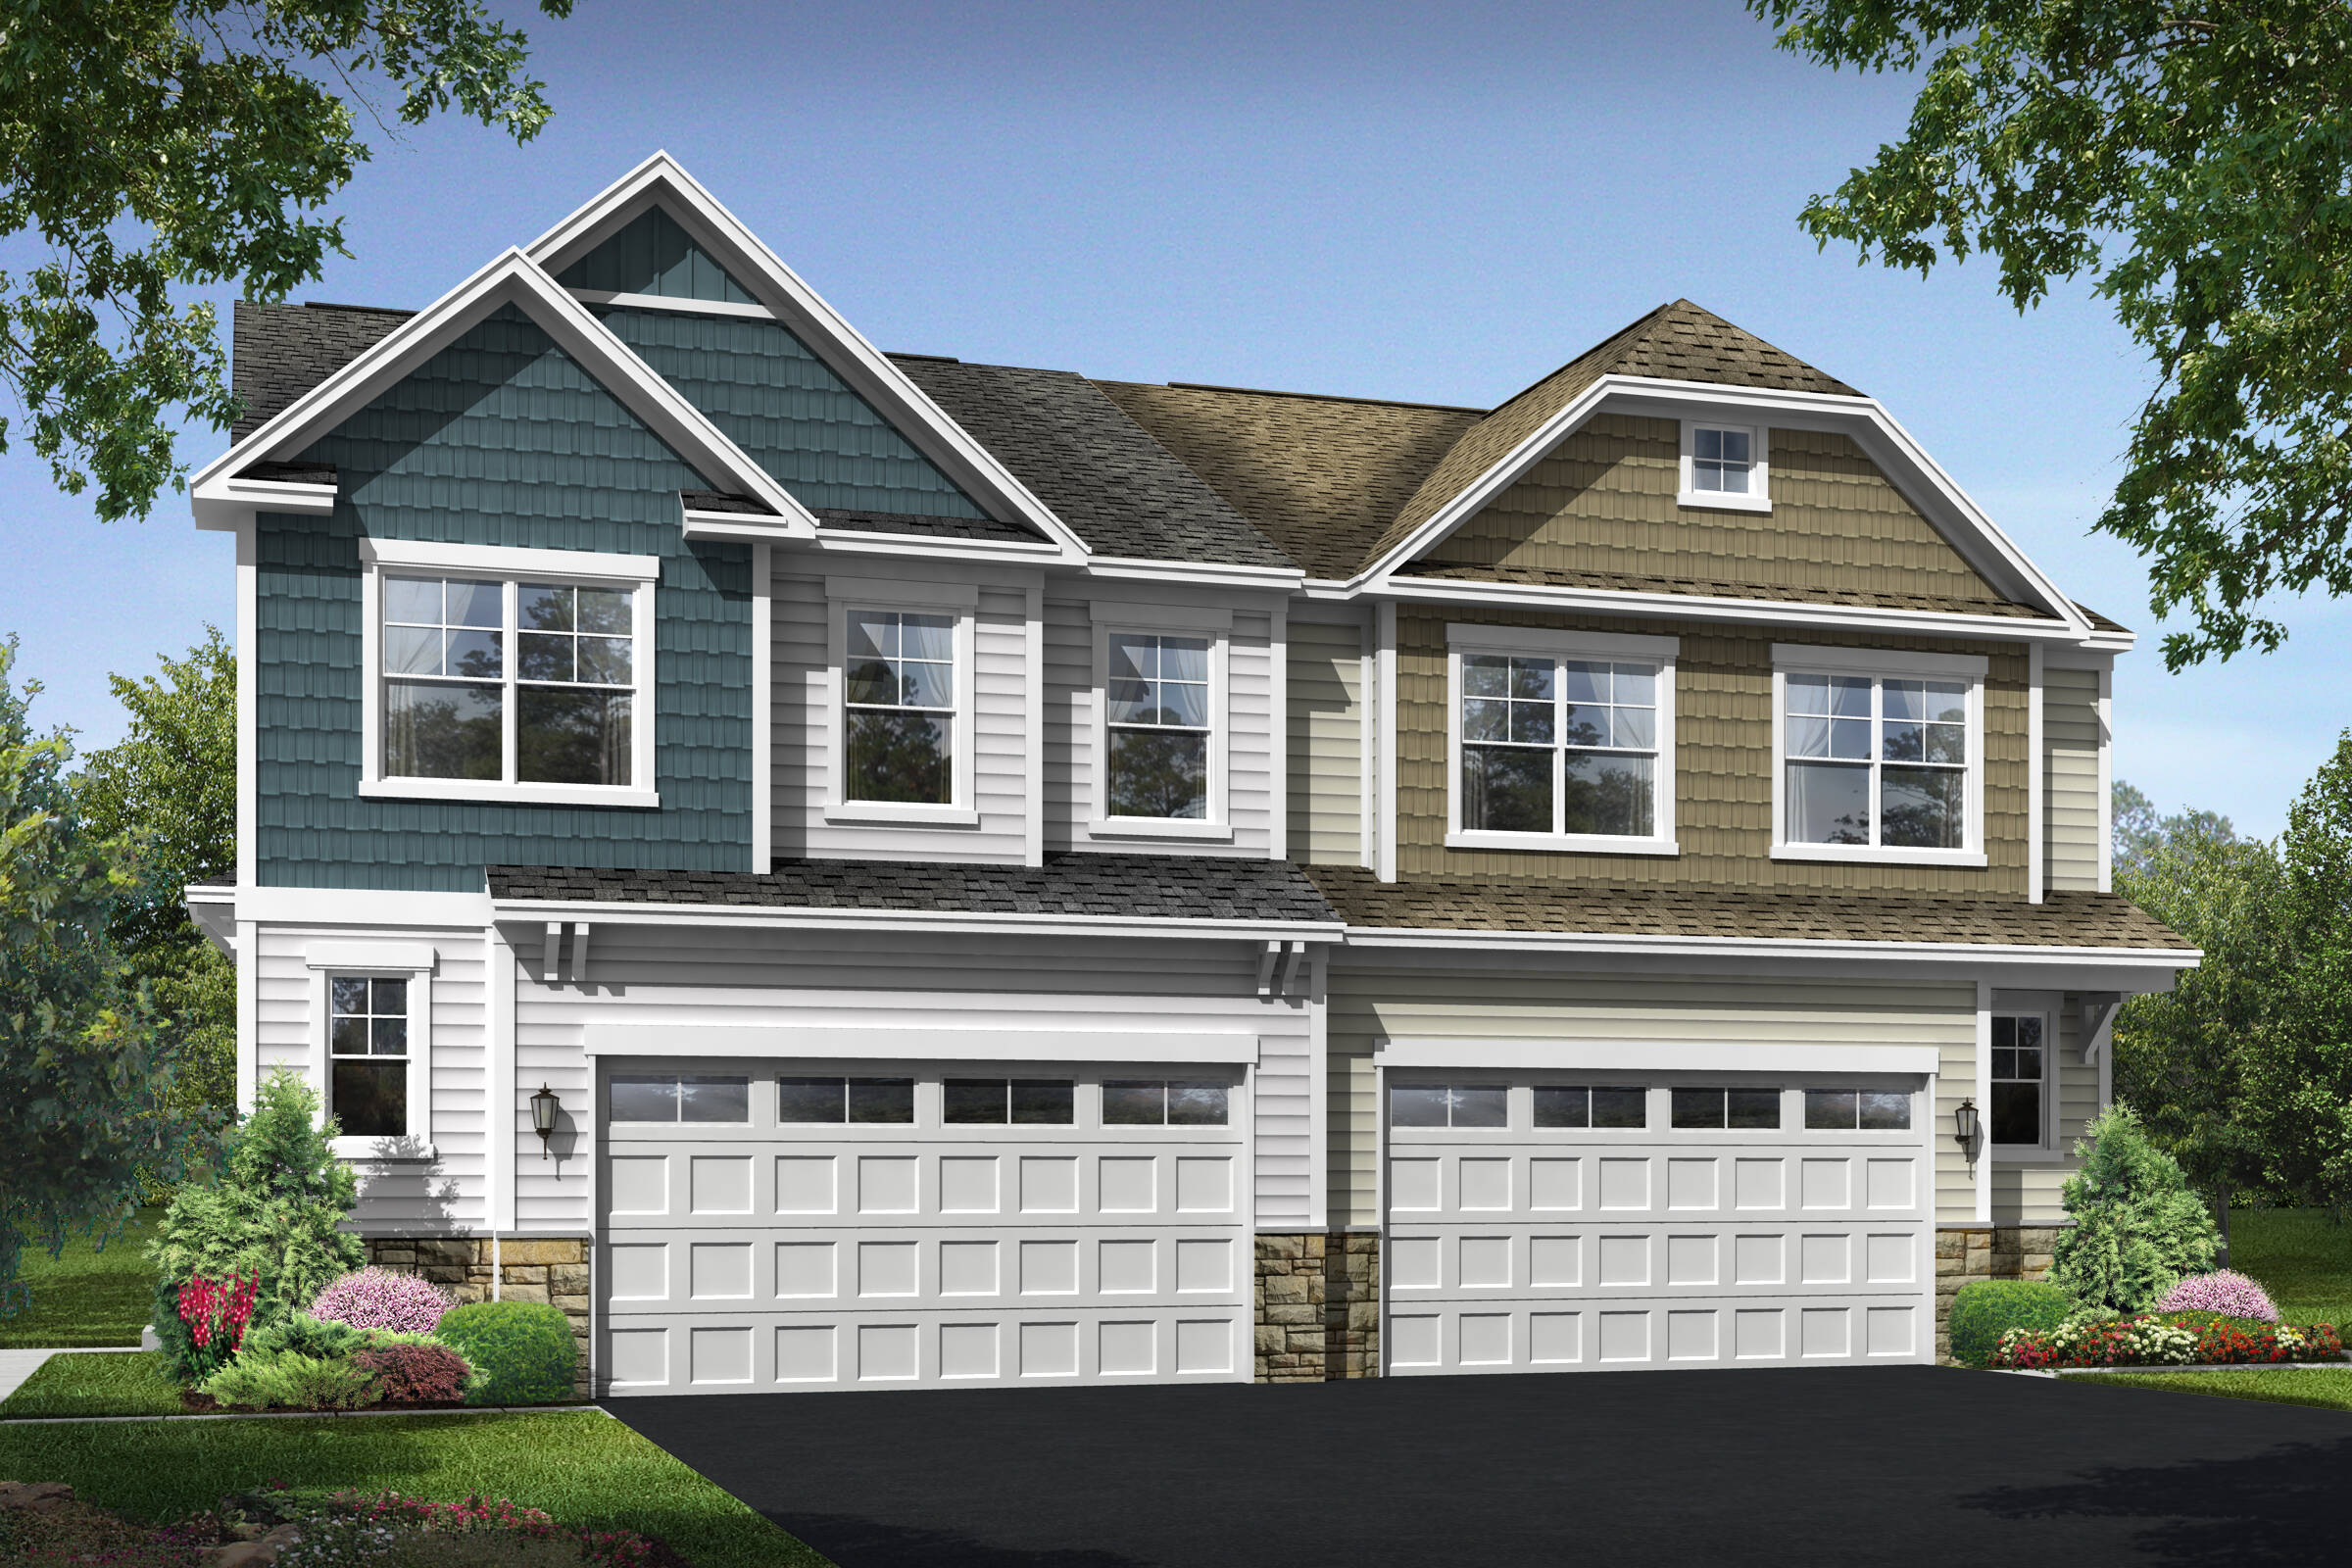 roanoke I b new homes at villas at wellspring in virginia